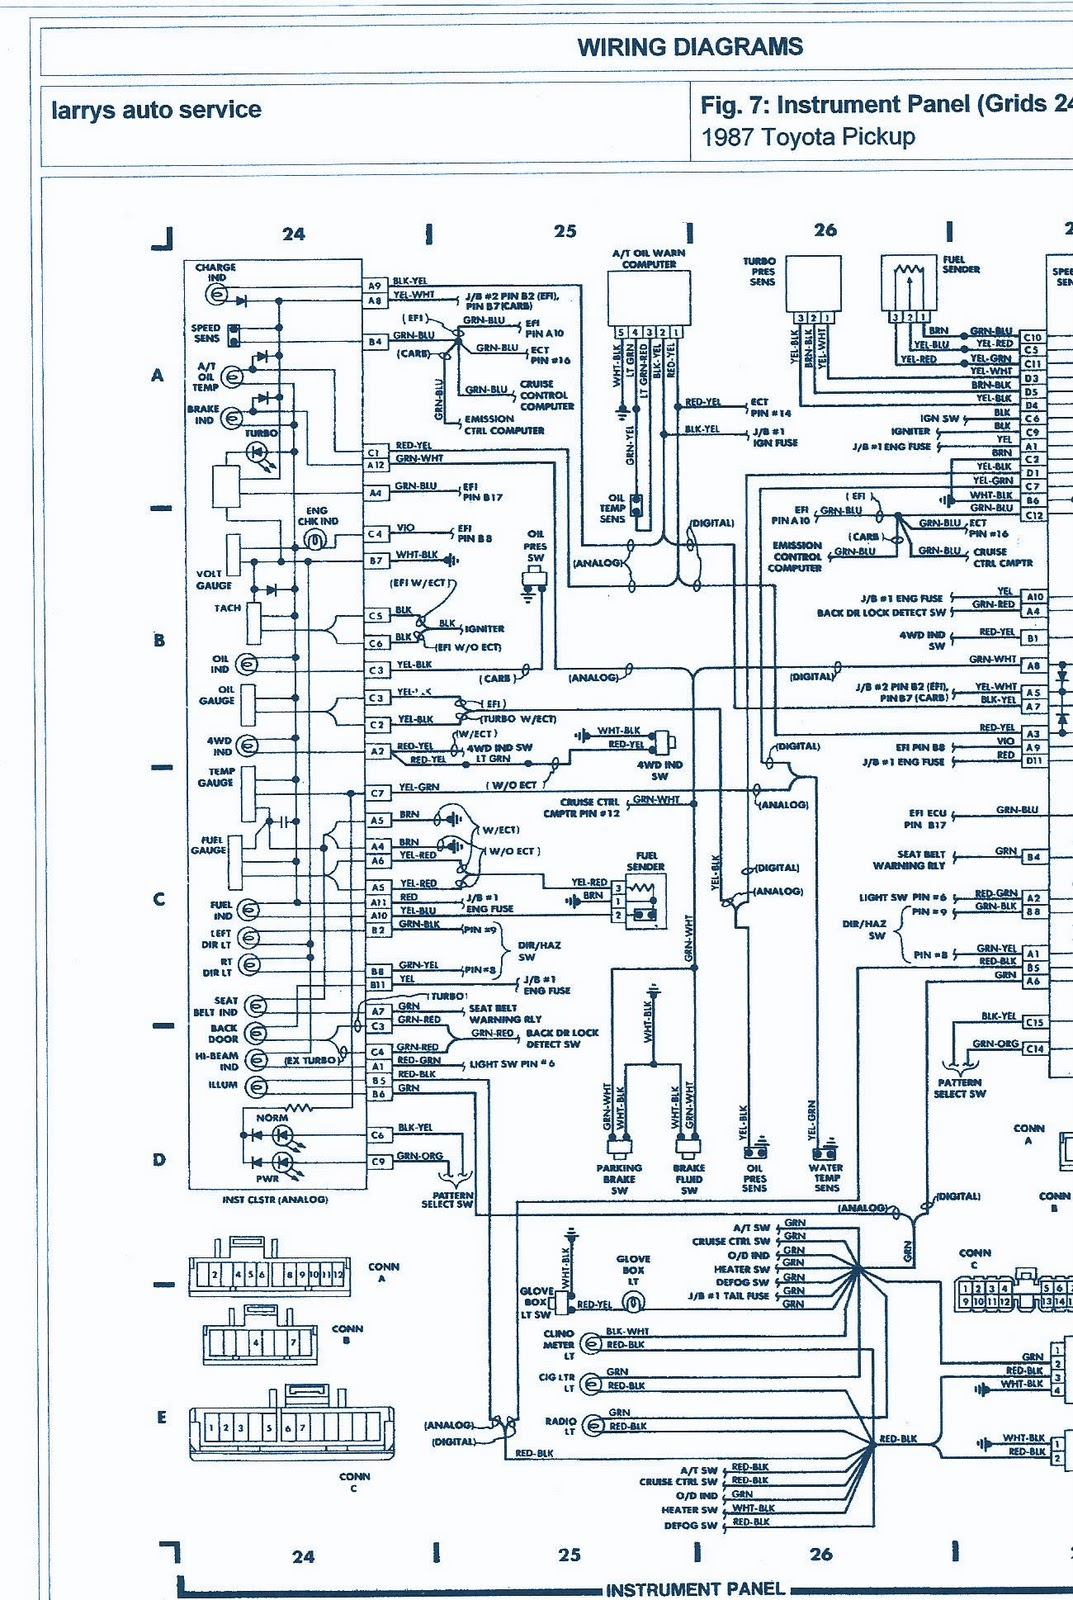 schema] 1994 toyota pickup wiring diagram full quality -  mobilediagrams.bruxelles-enscene.be  mobilediagrams bruxelles-enscene be